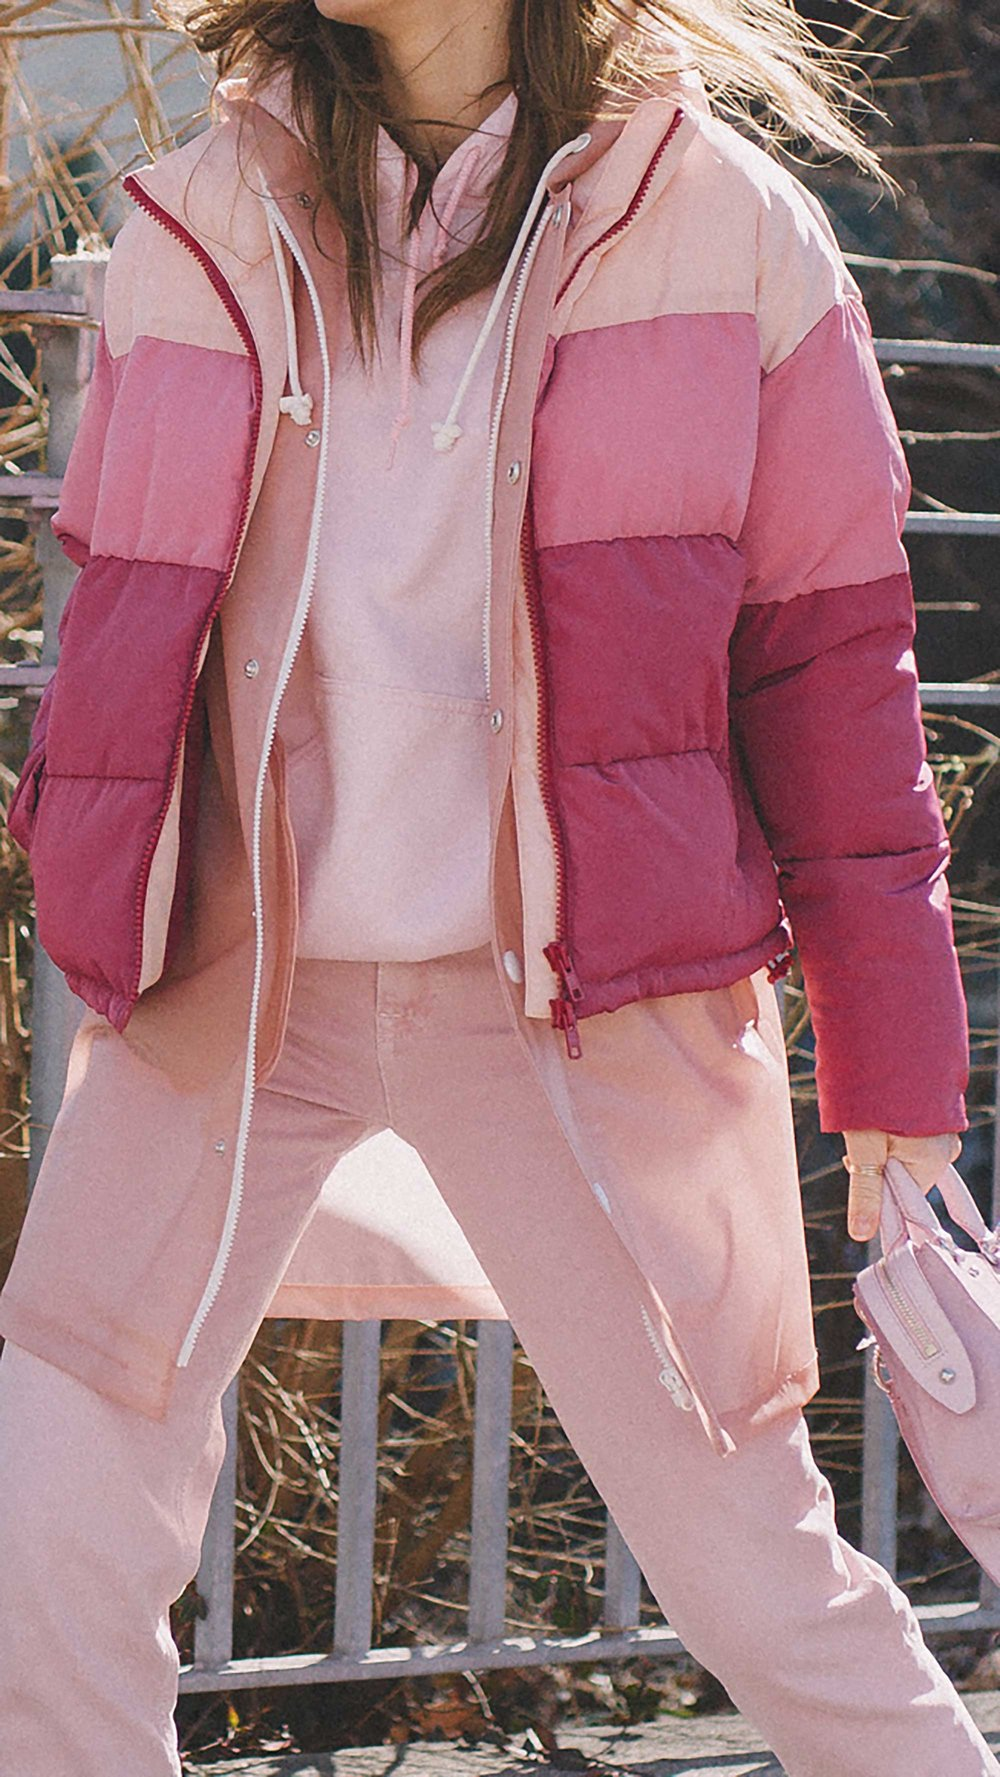 20 irresistible pastel outfit ideas for winter from New York Fashion Week street style6.jpg